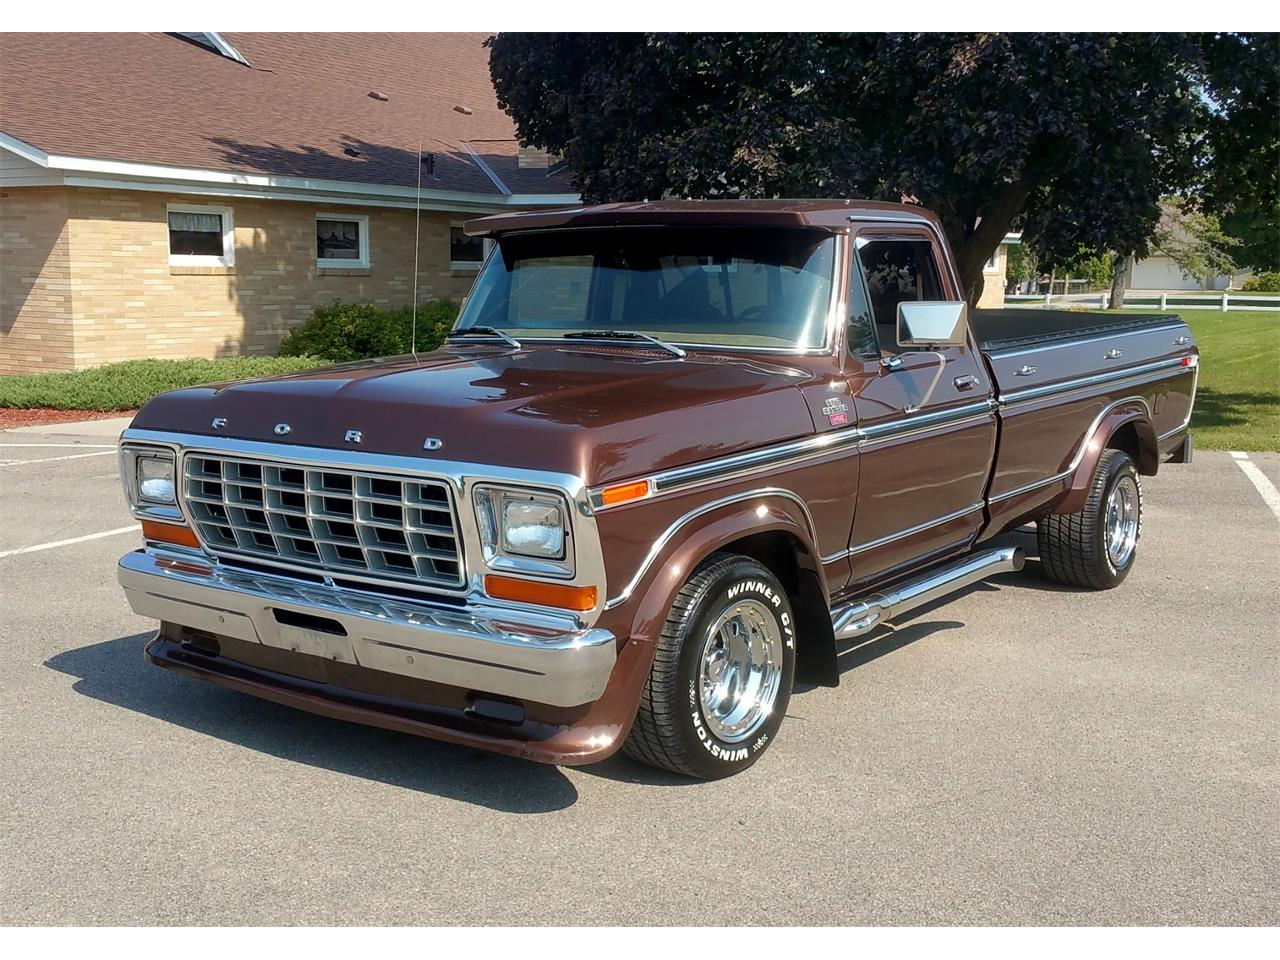 1979 f150 ford 79 lariat classic xlt cc lake minnesota 1977 maple financing inspection insurance transport classiccars